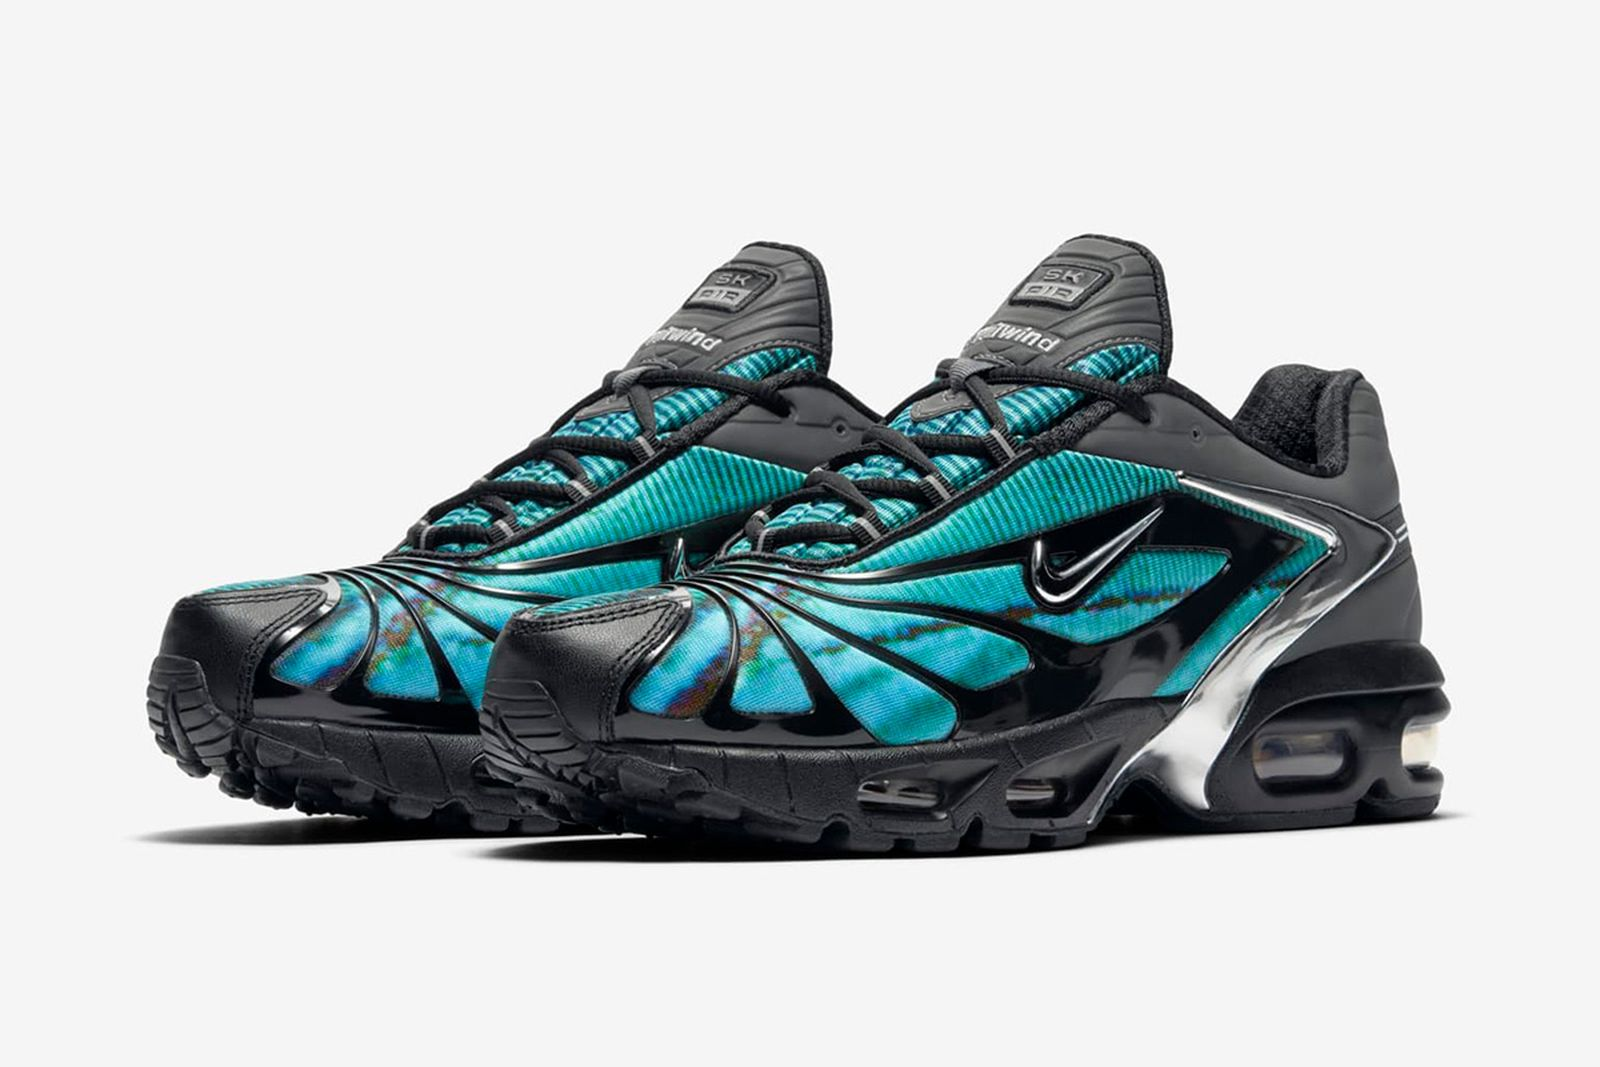 skepta-nike-air-max-tailwind-5-release-date-price-official-05